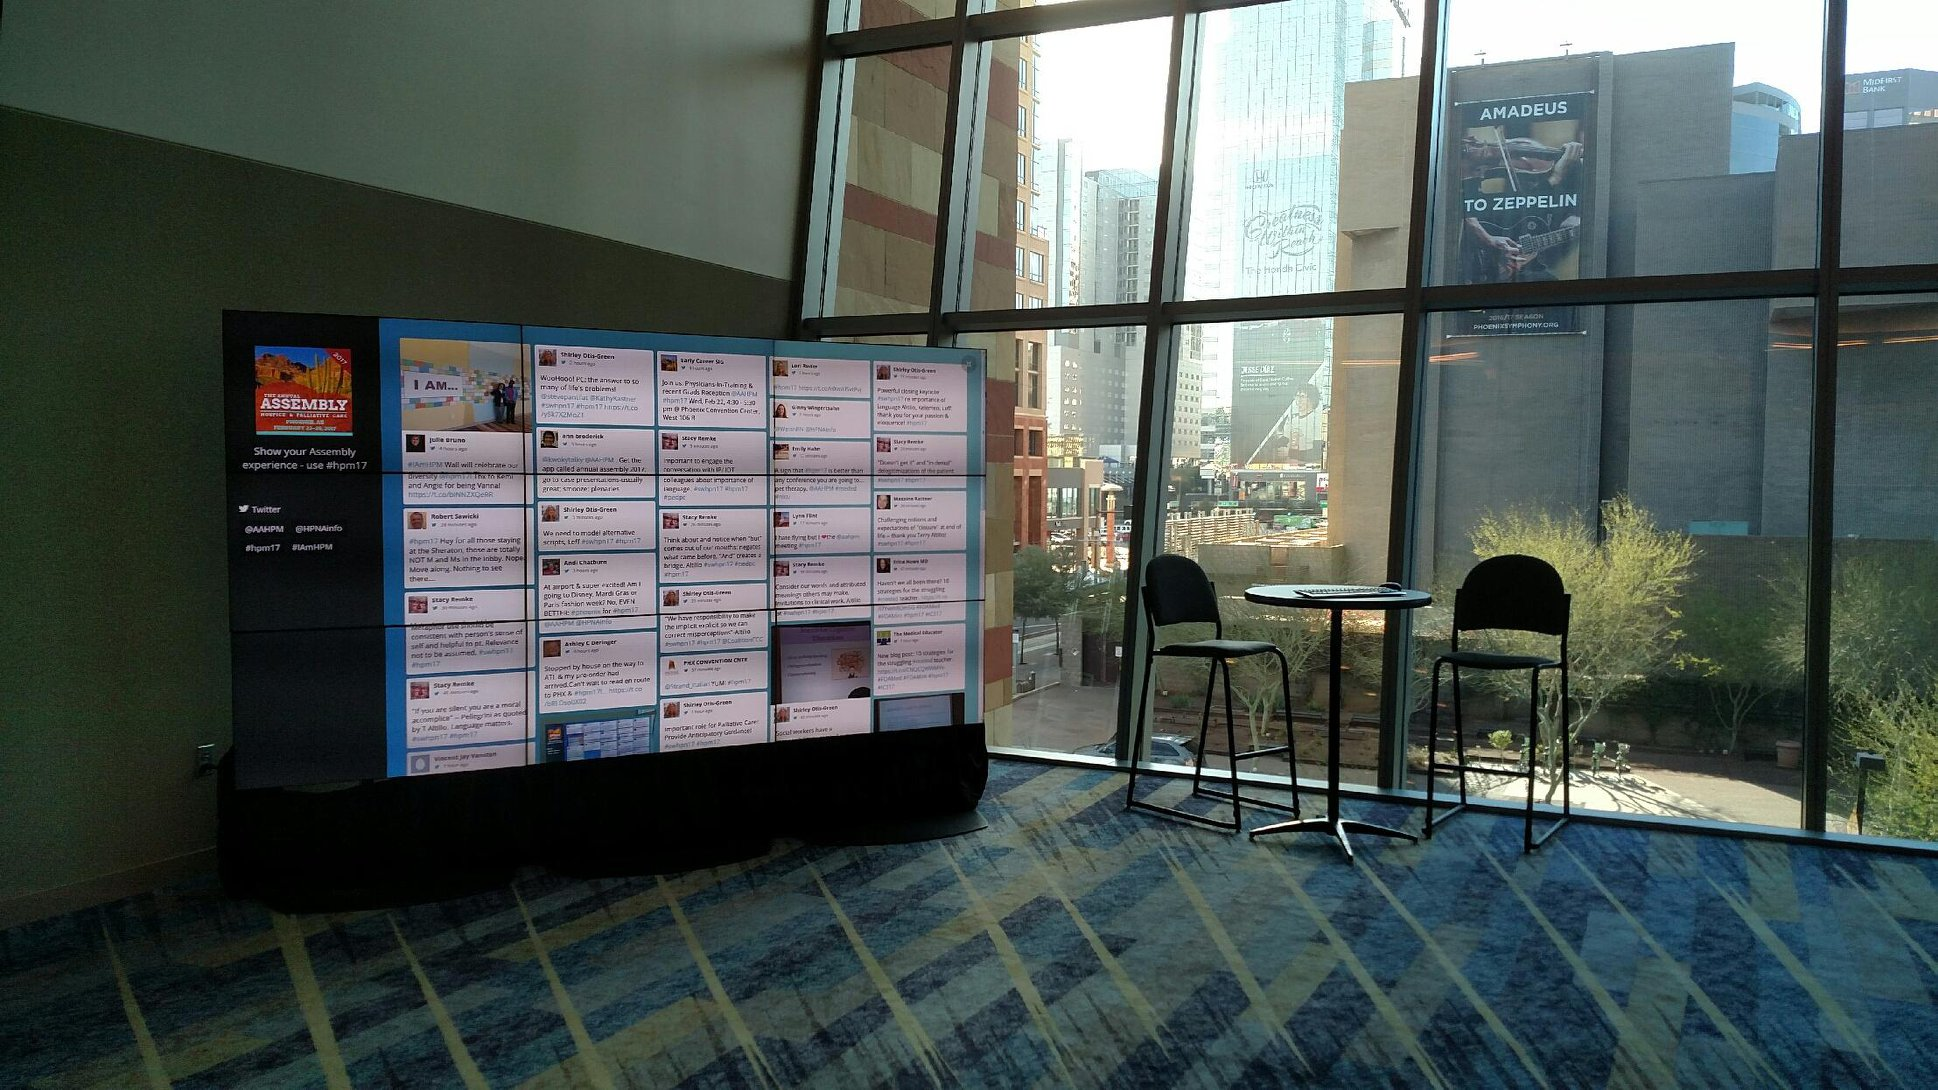 Video Wall for Social Media